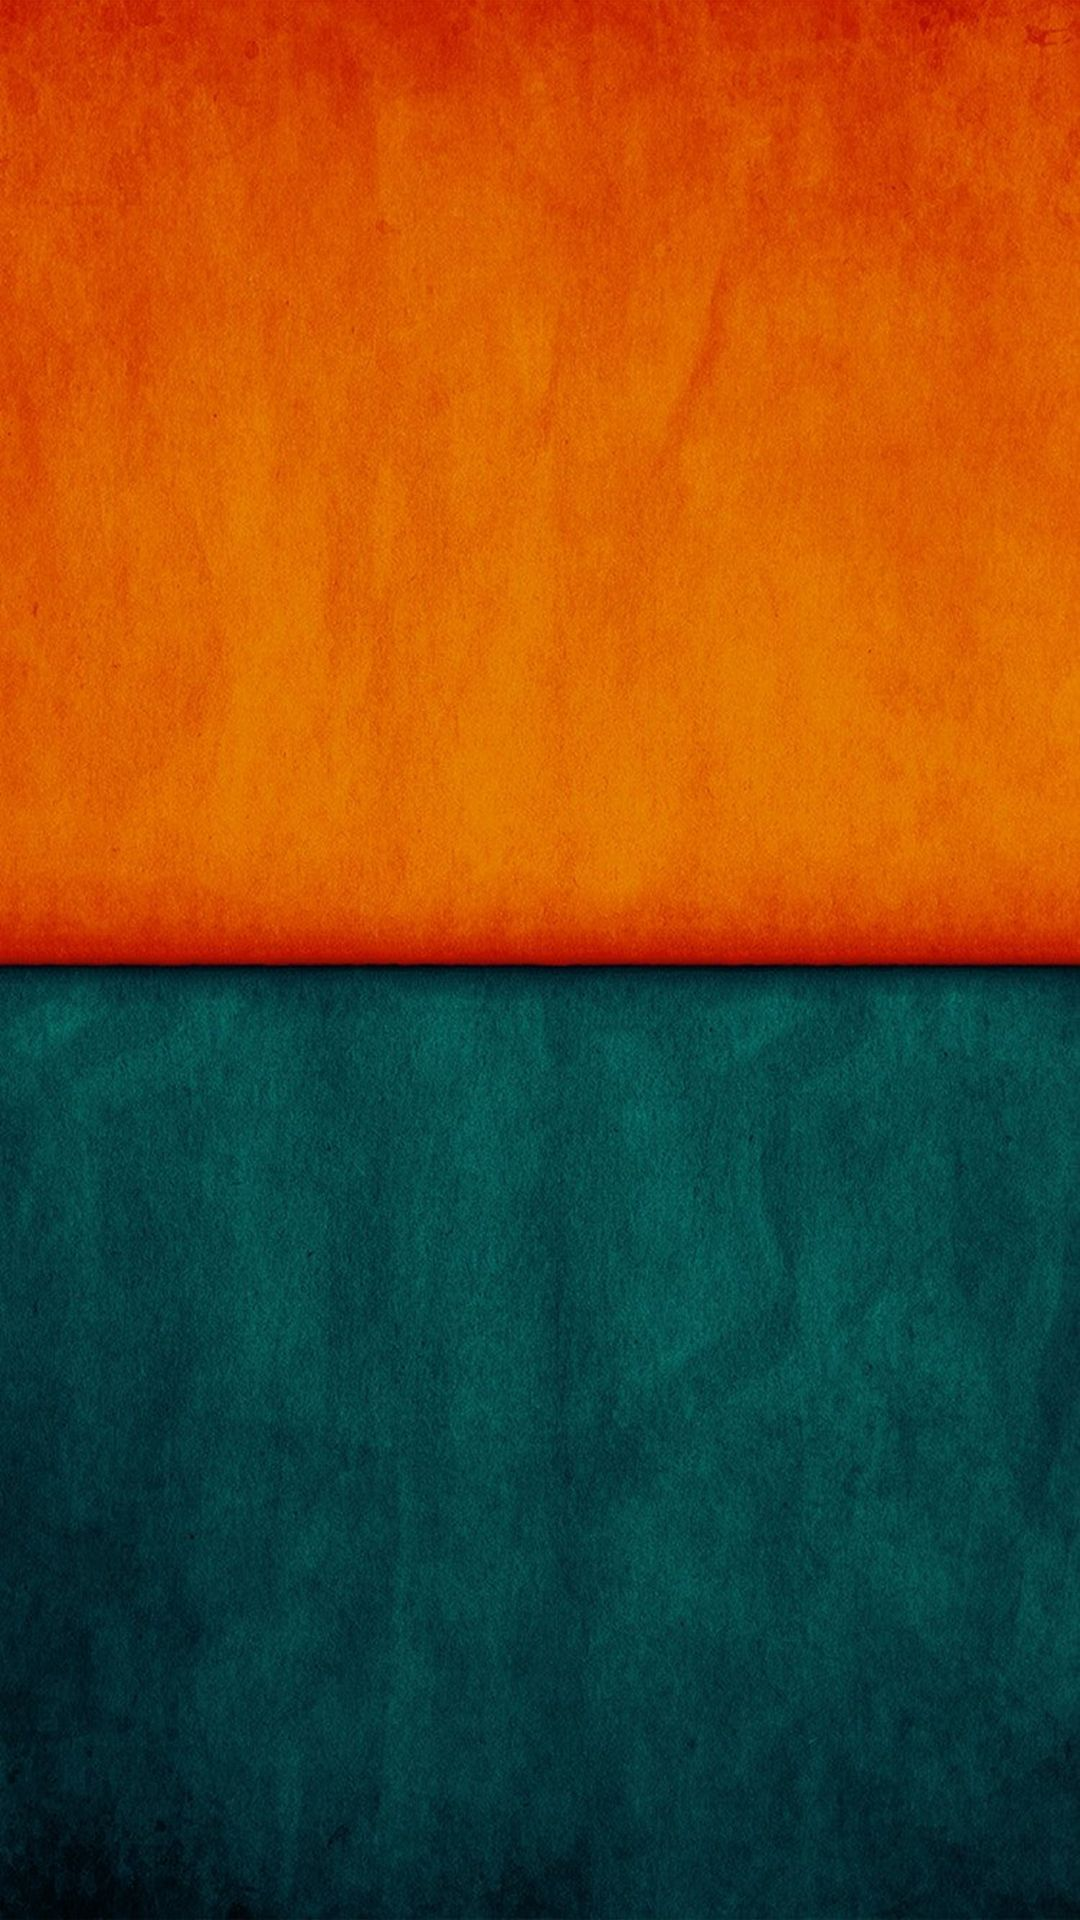 Orange Blue Pattern Background Iphone 8 Wallpaper Blue Background Patterns Orange Wallpaper Background Patterns